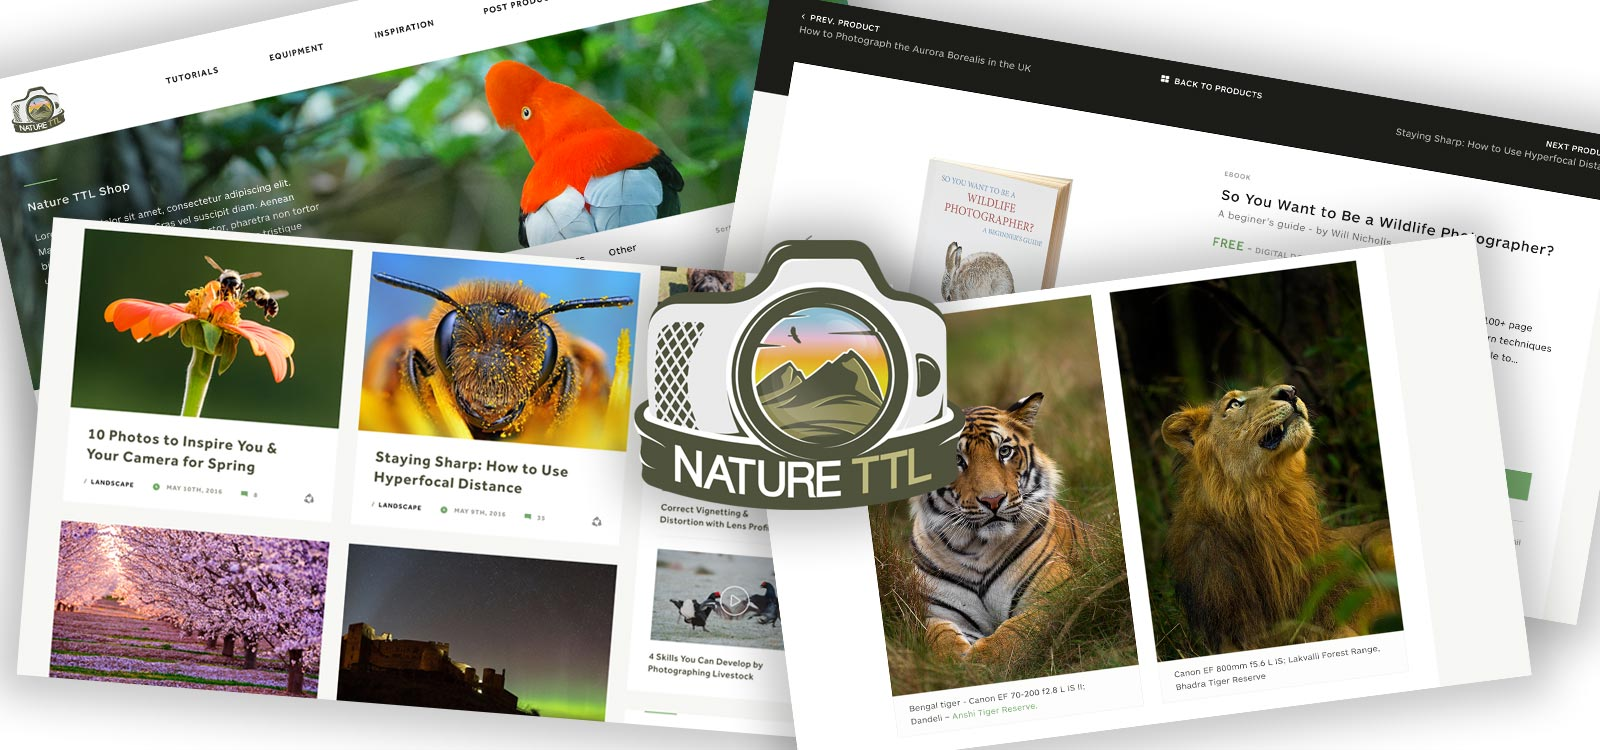 support nature ttl